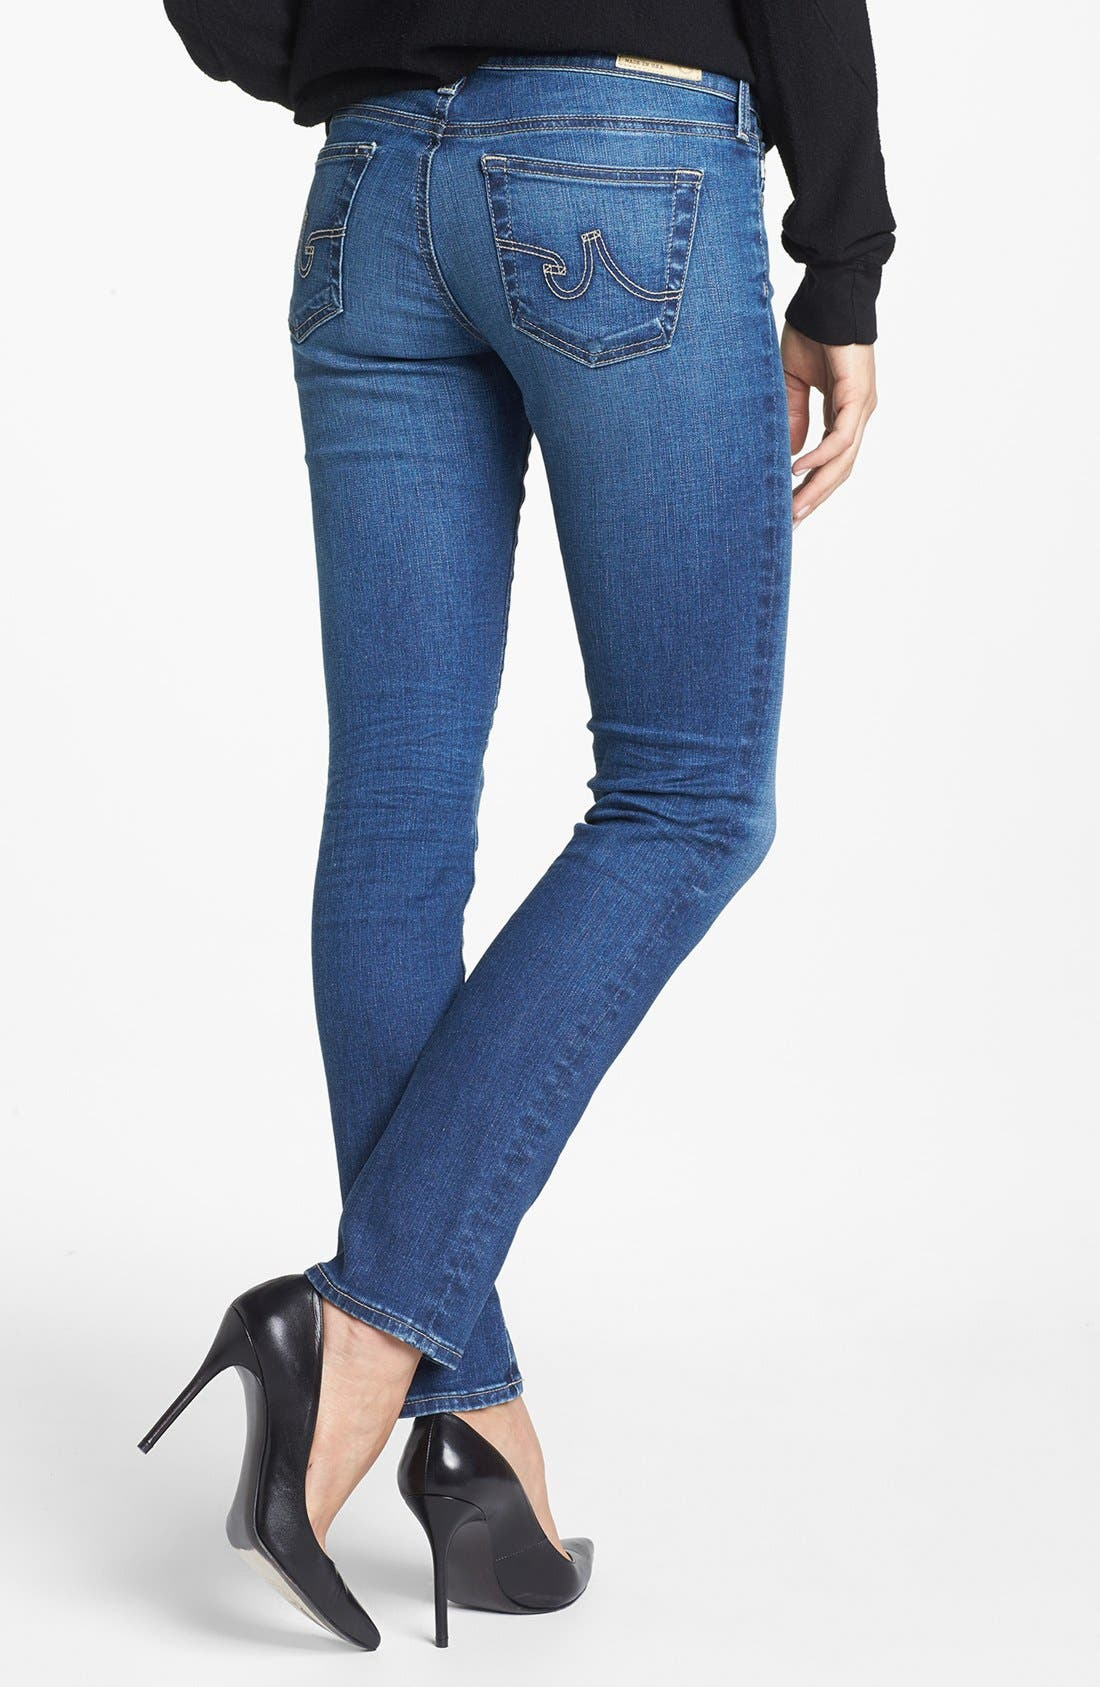 'The Stilt' Cigarette Leg Jeans,                             Alternate thumbnail 2, color,                             Eleven Year Journey